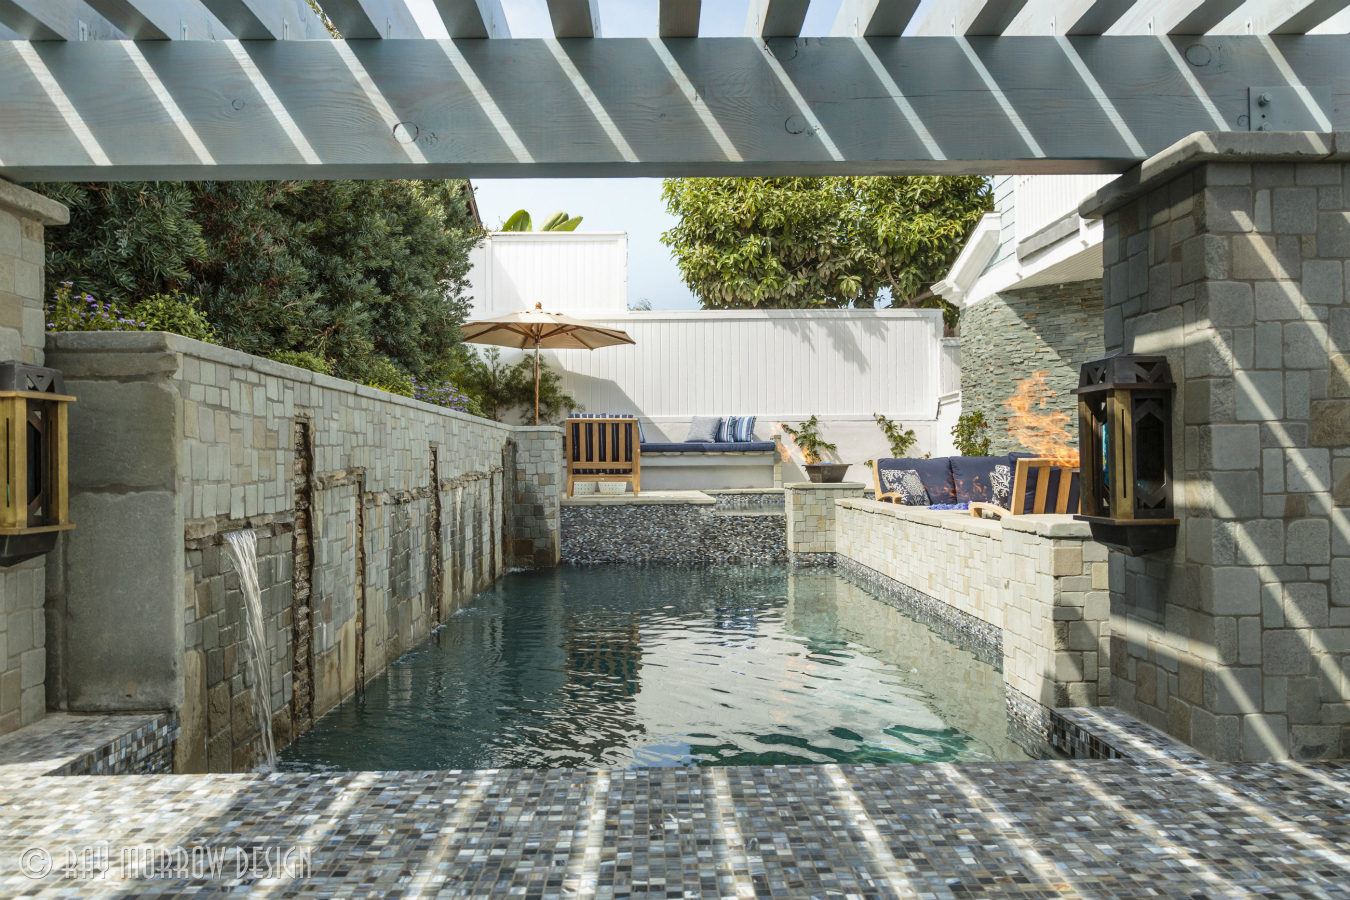 landscape-architecture-with-pool-and-fountain-wall-cottle.jpg